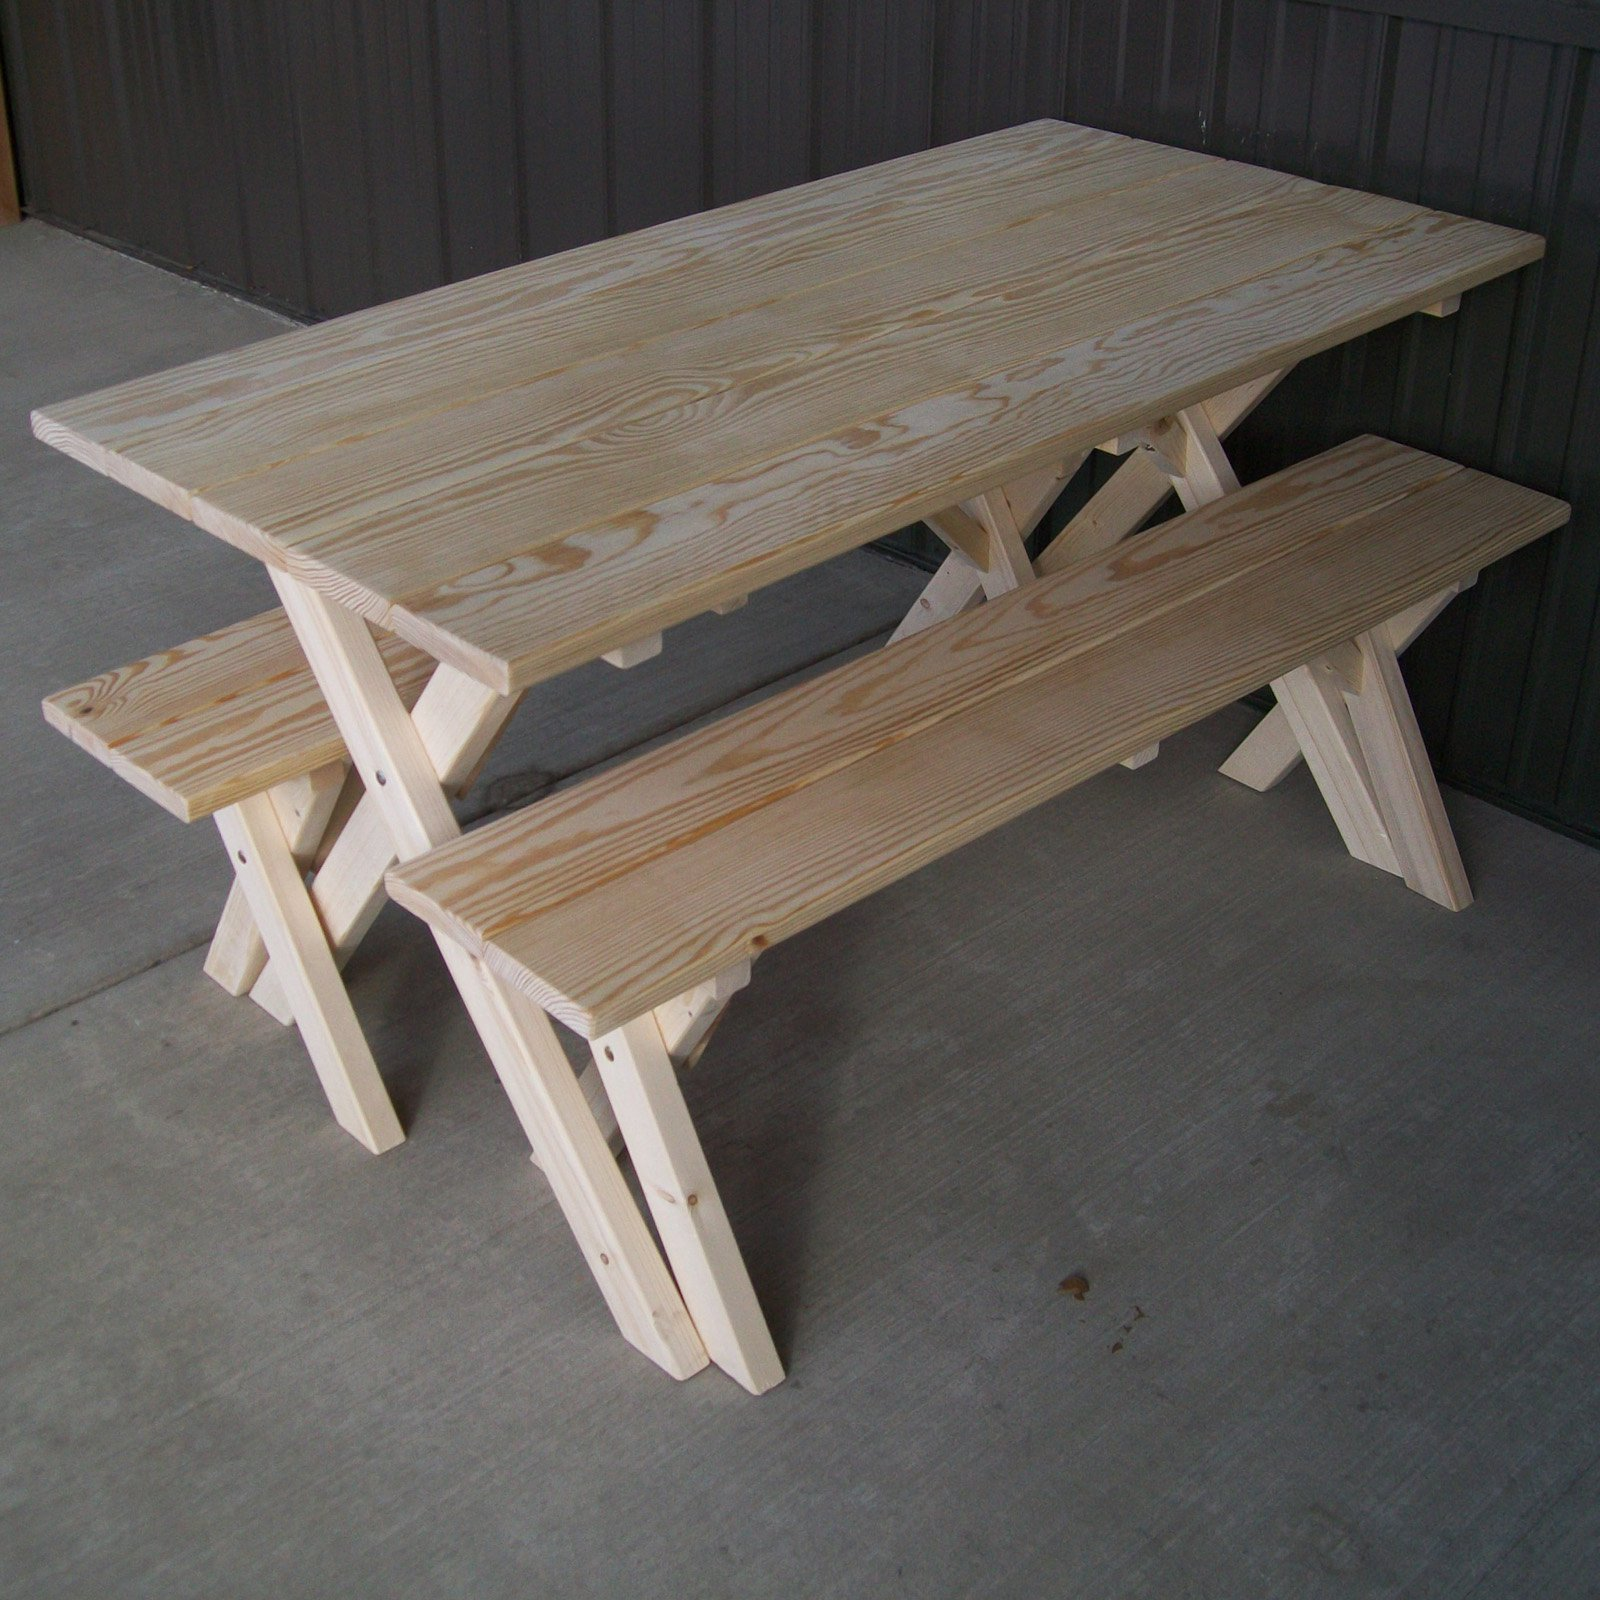 a u0026amp l furniture pine cross legged picnic table with benches - Wood Picnic Table